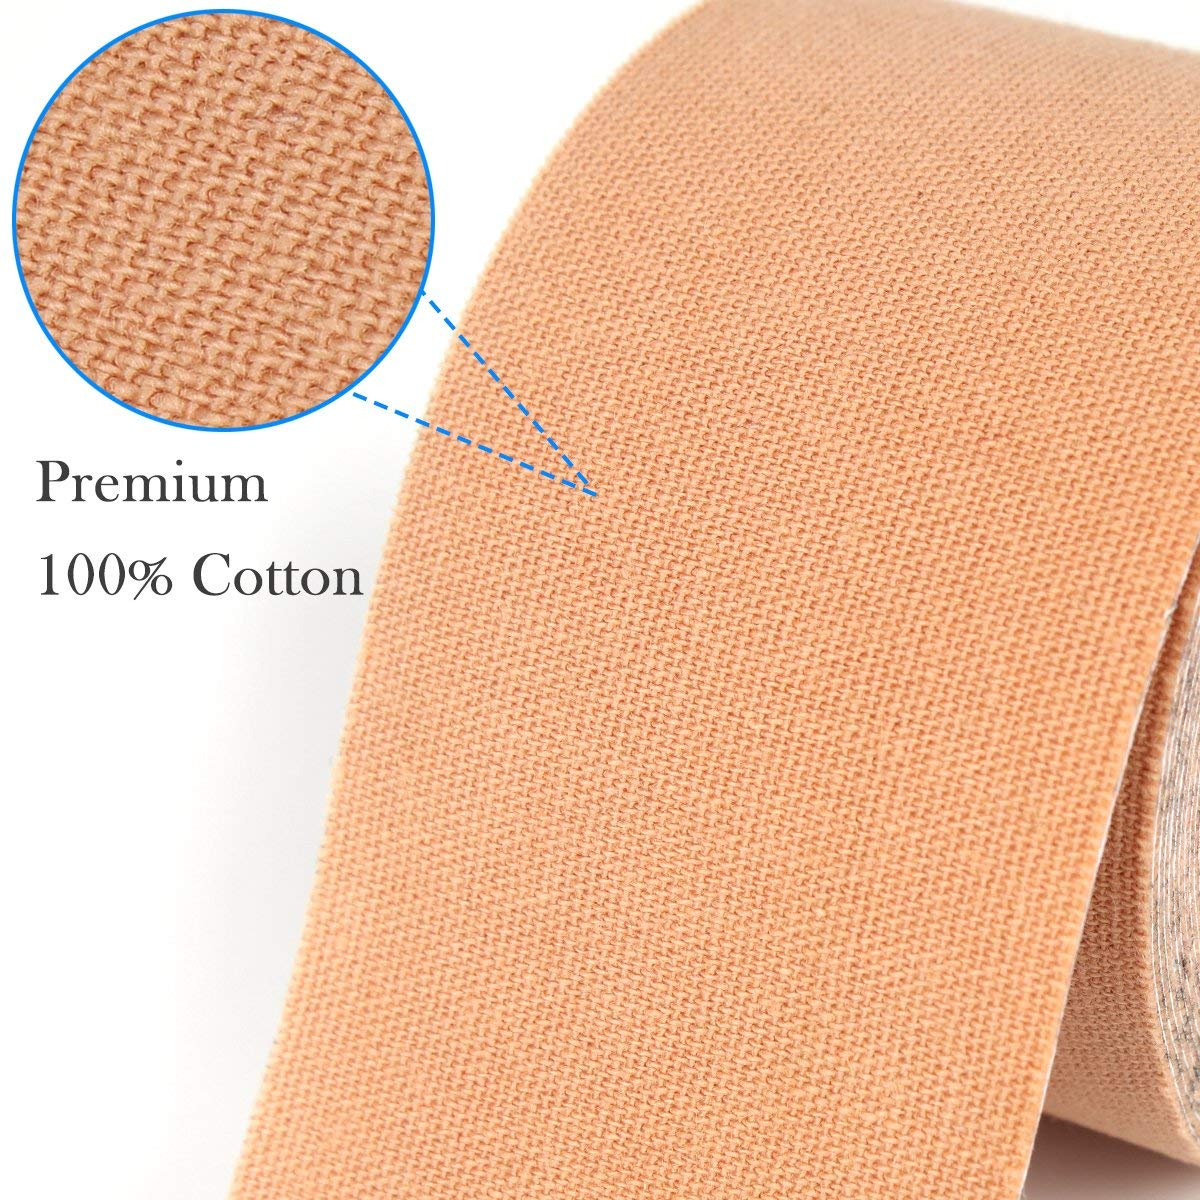 5cm*5m Kinesiology Tape Sports Reduce Pain Injury Recovery,Athletic Tape Gym Fitness Tennis Running Knee Muscle Wrap Protector 4